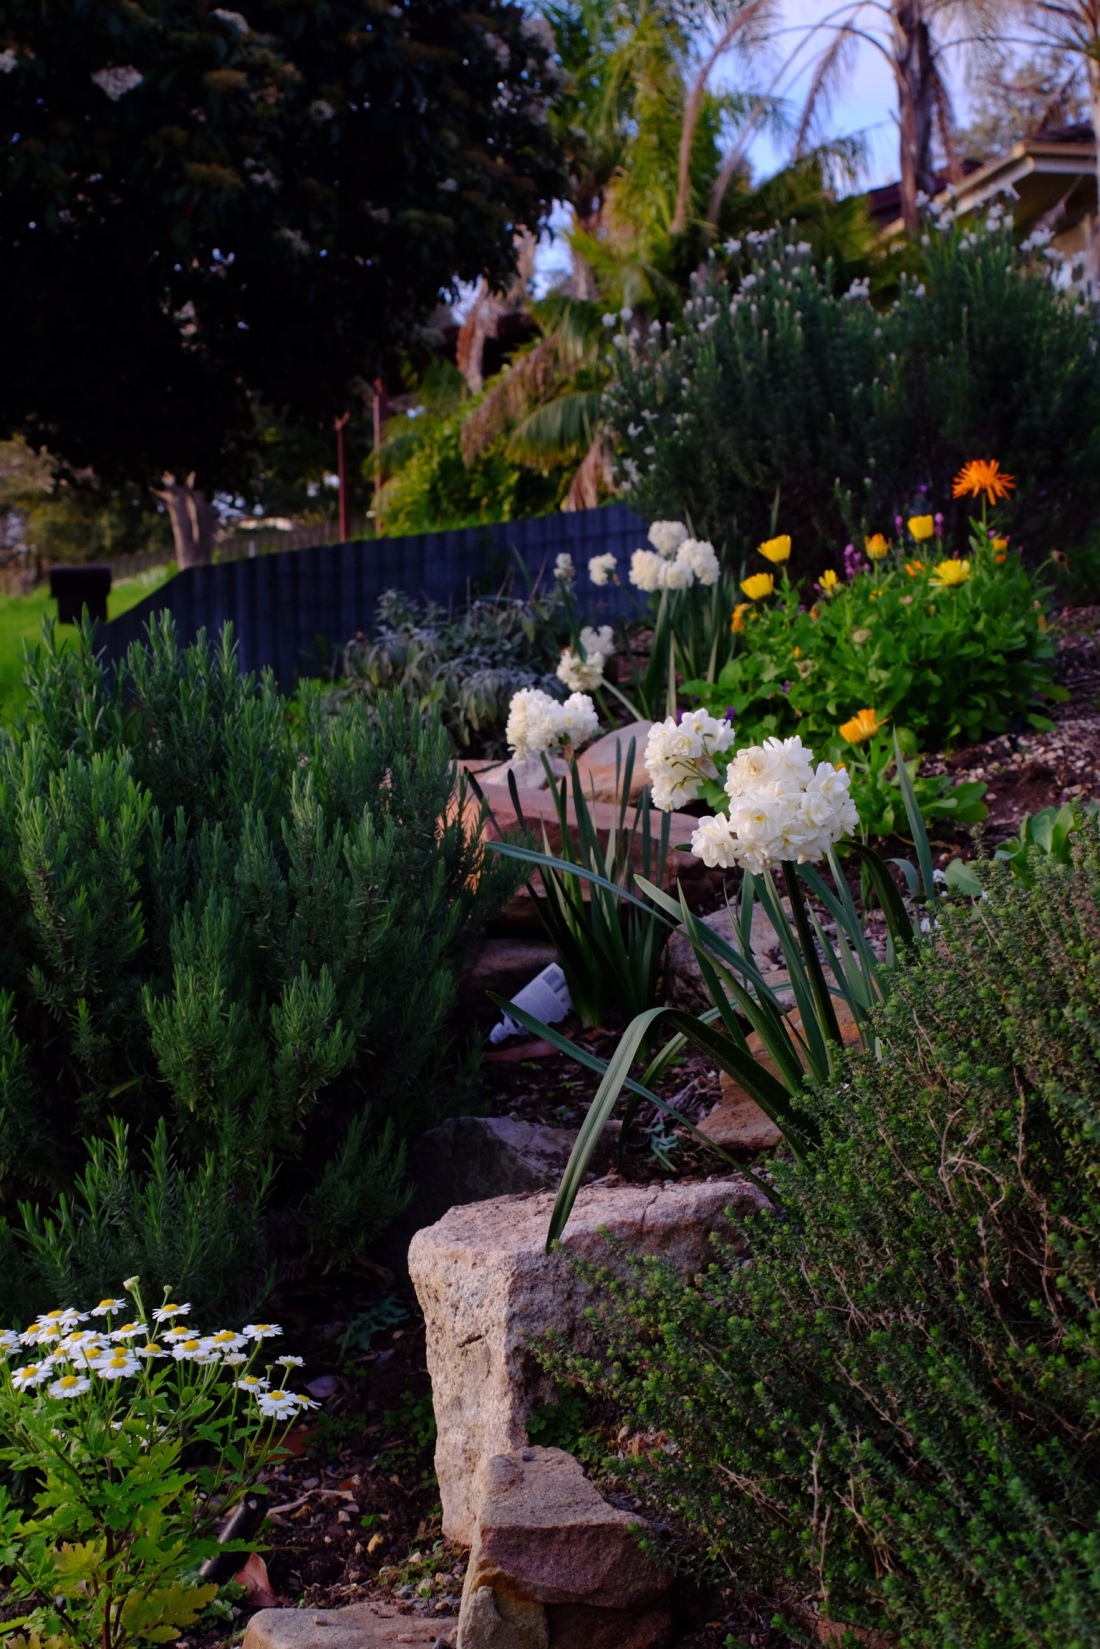 White daffodils planted in a rockery with other flowers and herbs in the foreground